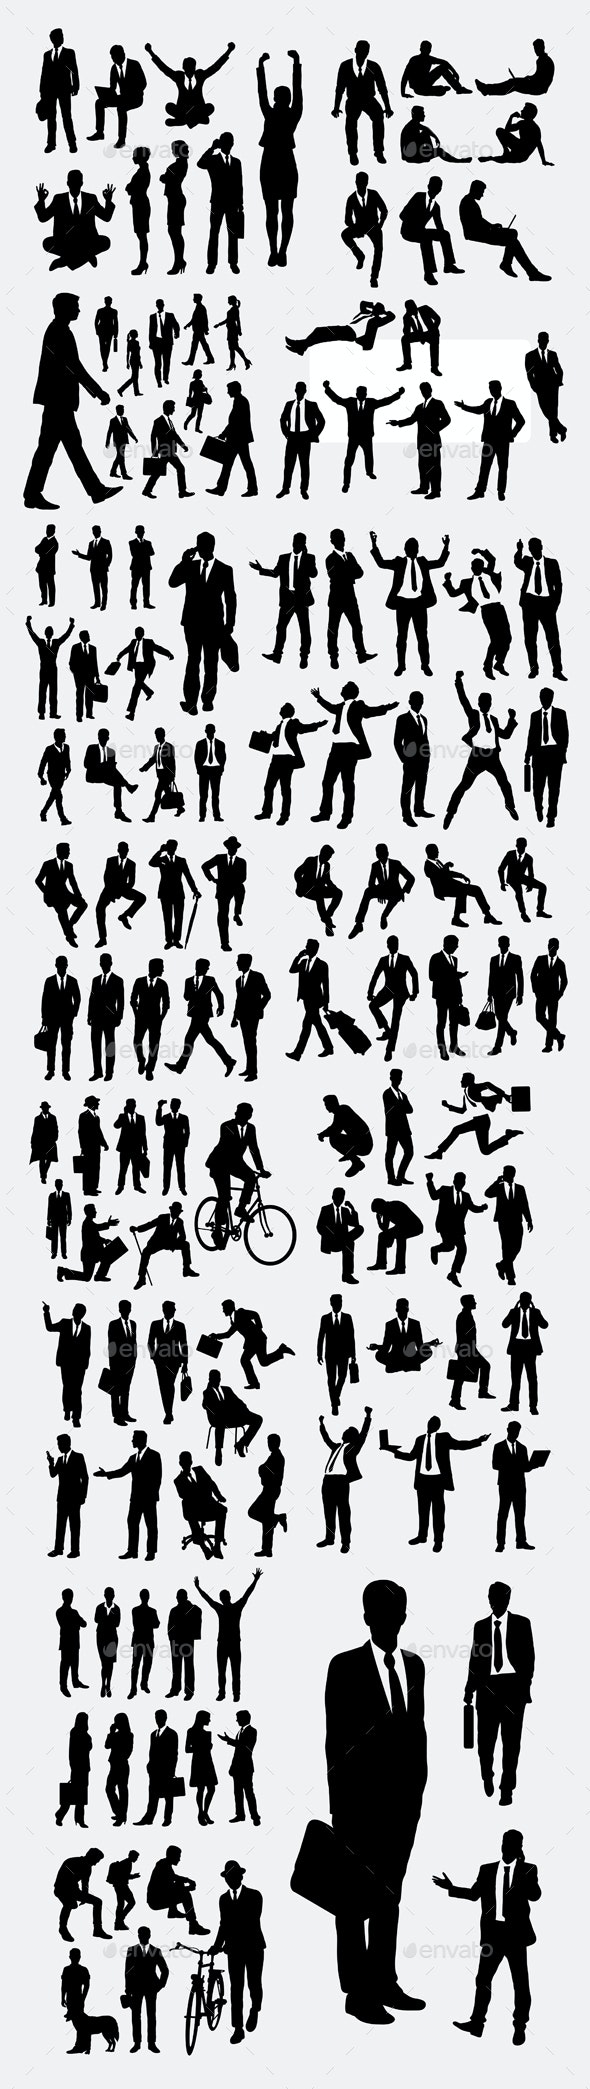 100 More Business Silhouettes - Business Conceptual